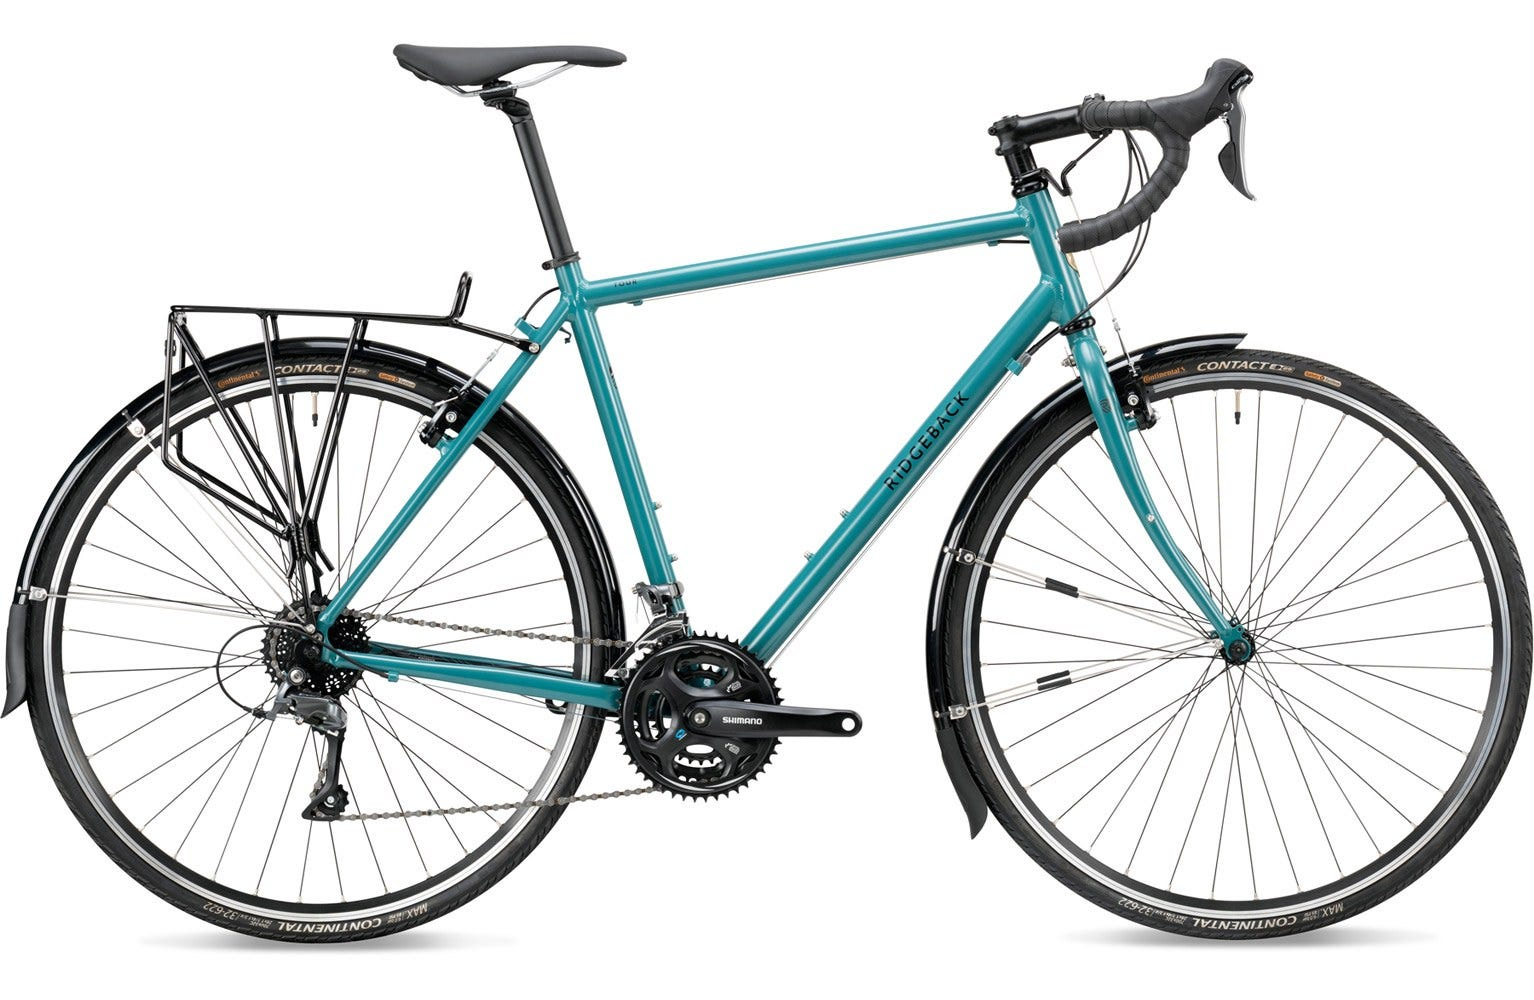 Ridgeback 2021 Tour MD Bike sample (unused)